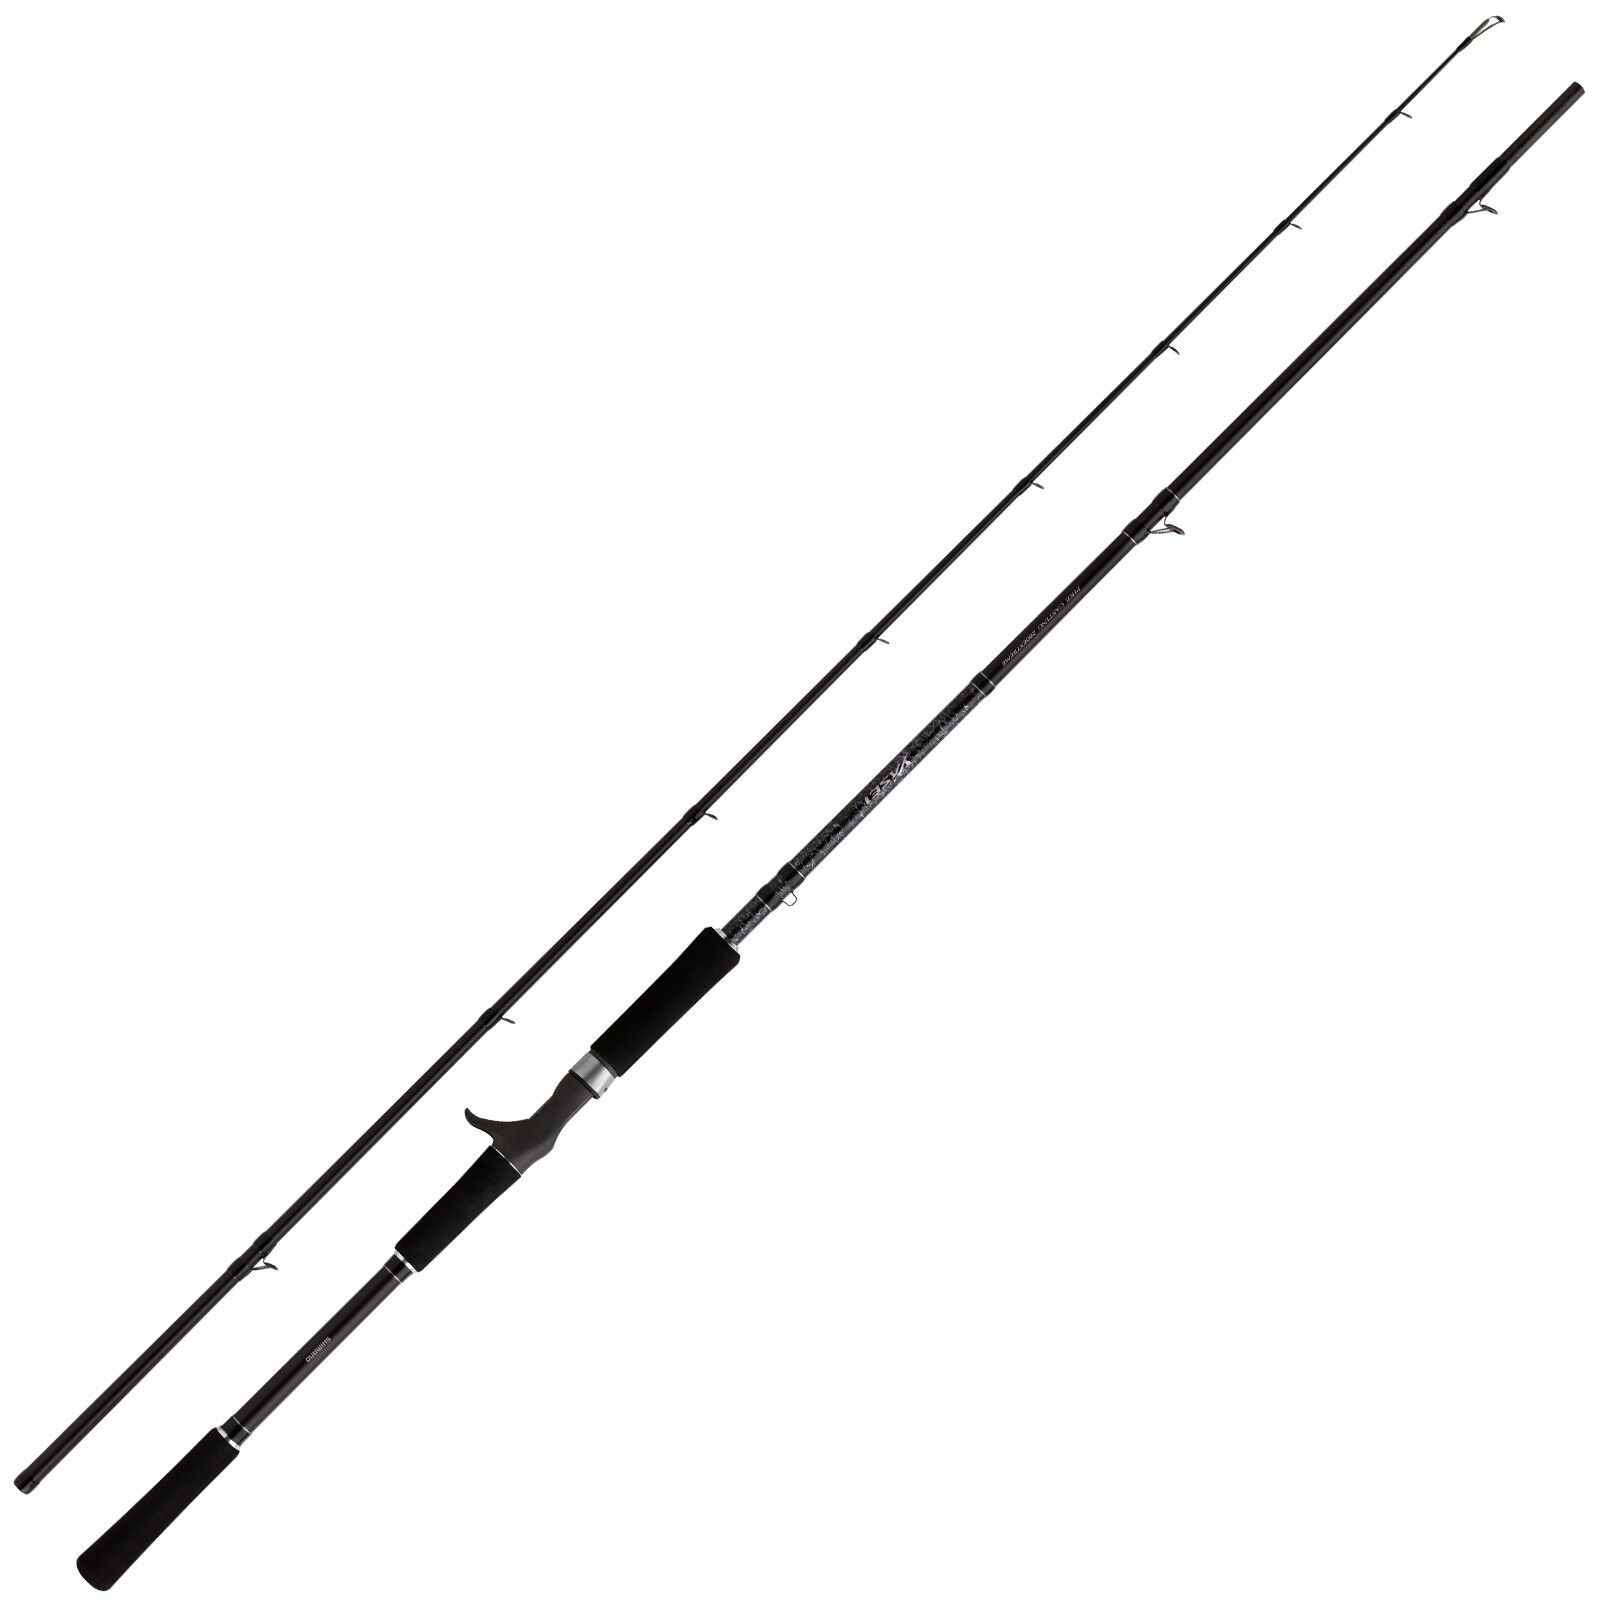 Shimano Angelrute – Yasei Pike Casting Extreme 260 2,60m 120-270g